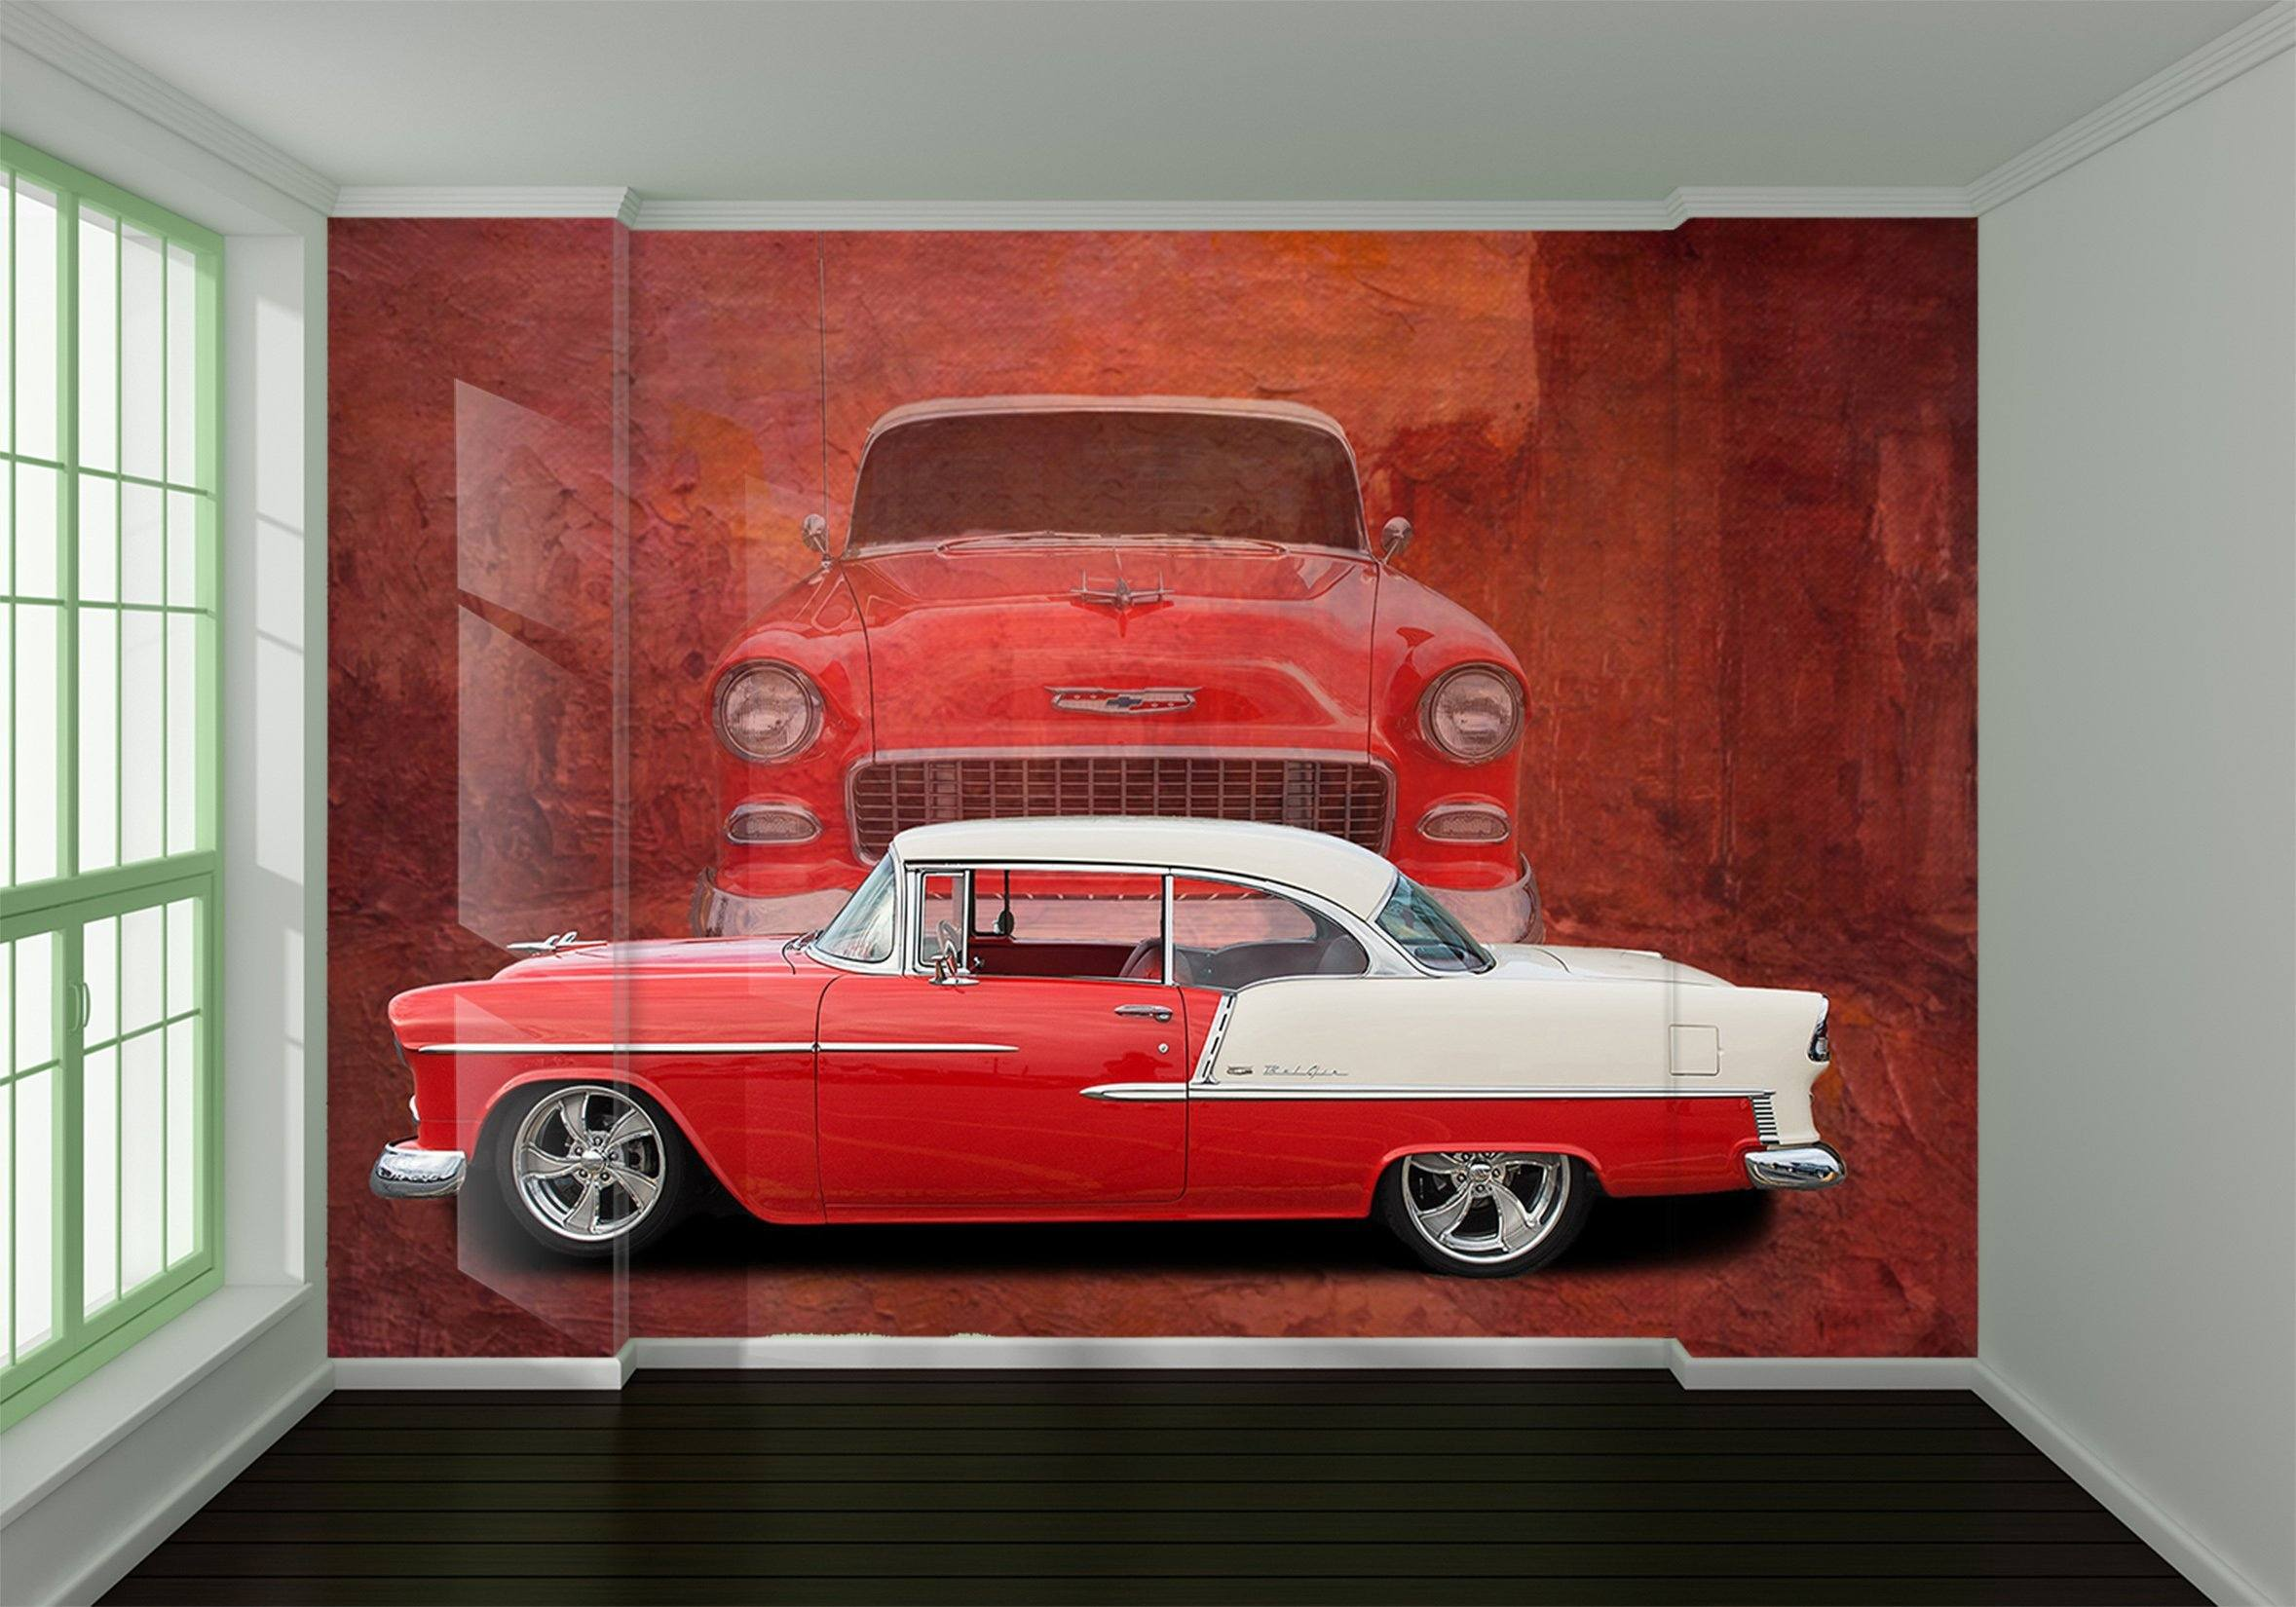 3D Atuo Red 904 Vehicle Wall Murals Wallpaper AJ Wallpaper 2